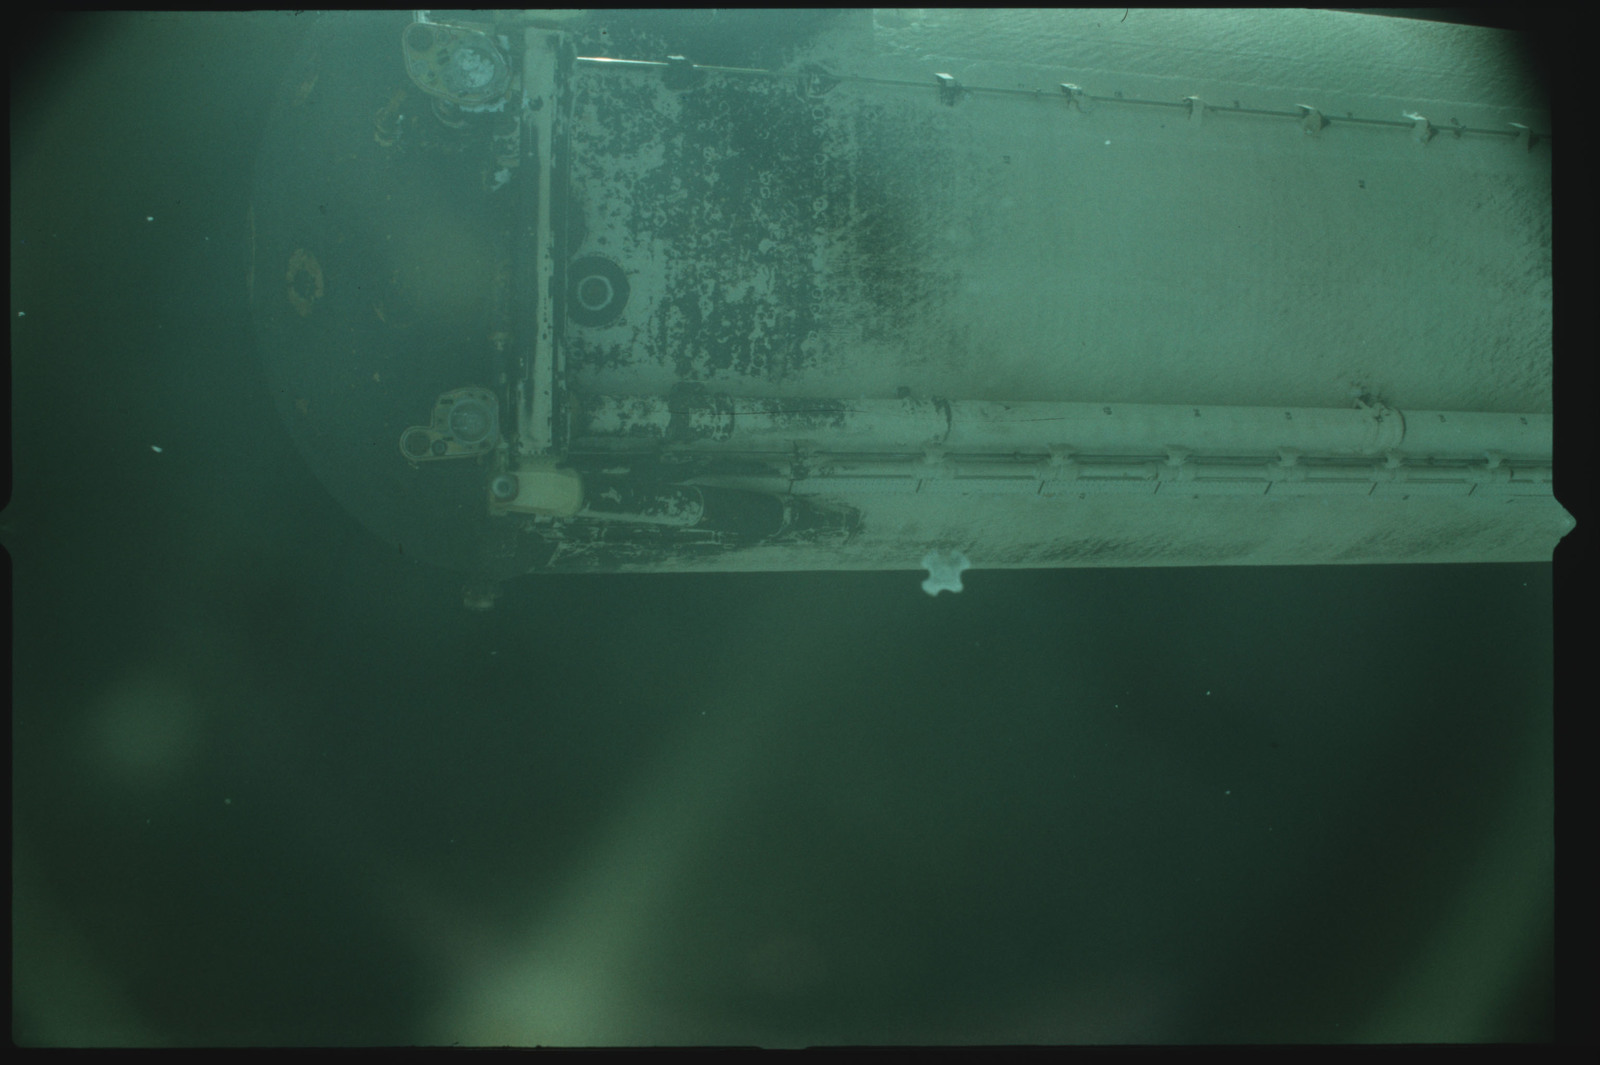 S02-500-935 - STS-002 - View of the External Tank after separation from Columbia during the STS-2 mission